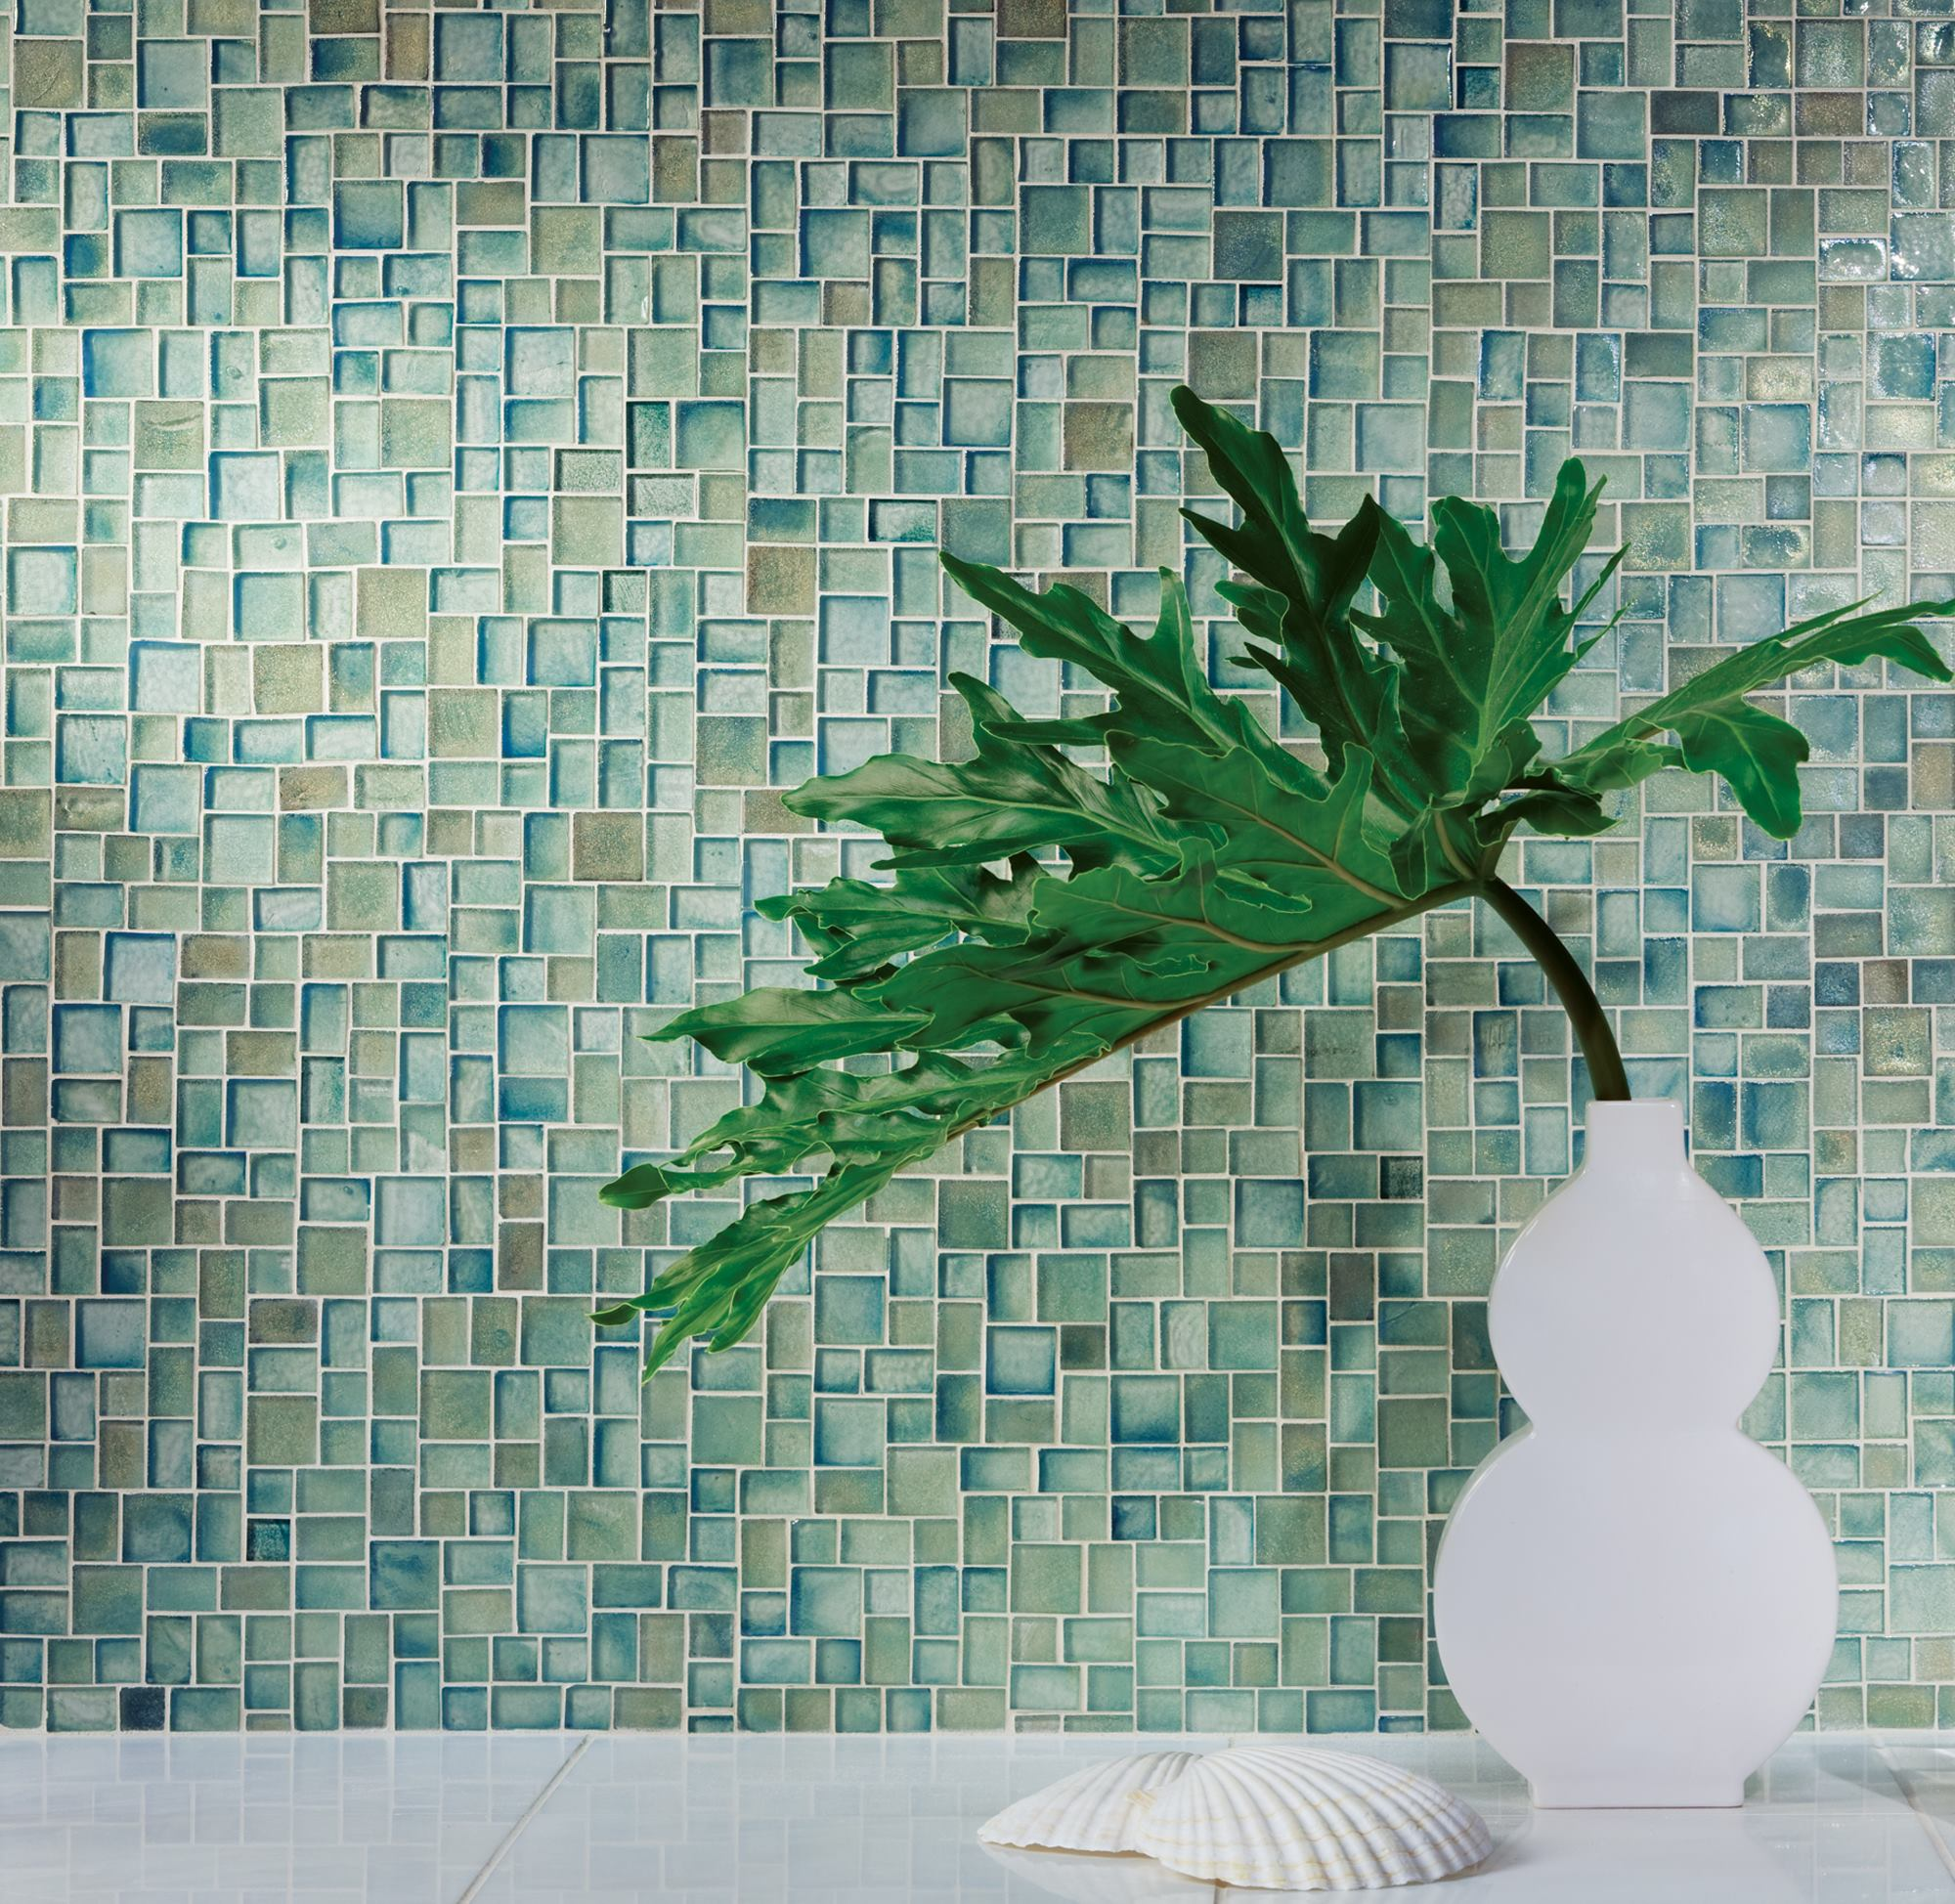 Oceanside glass tile tile designs 86 percent recycled content tile from oceanside glasstile dailygadgetfo Images